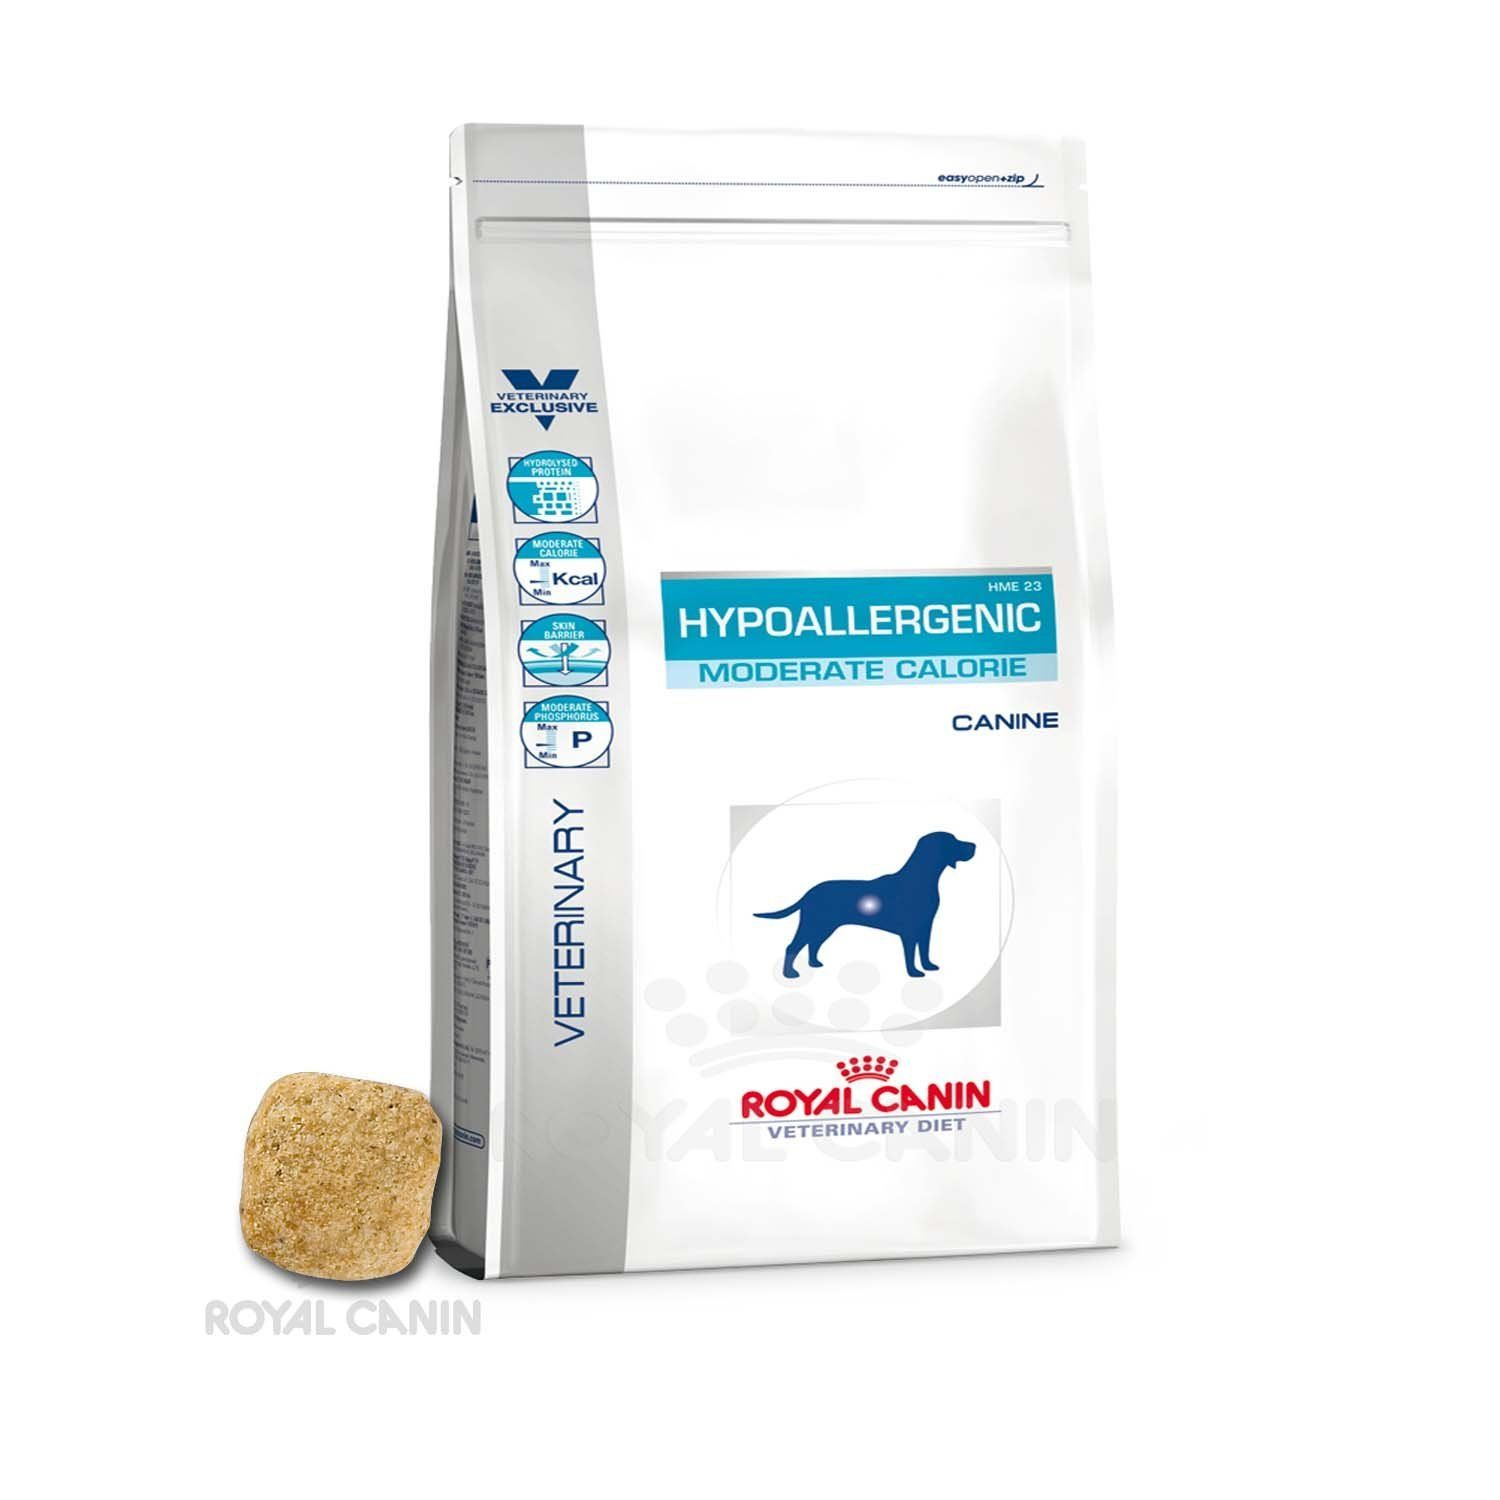 Royal Canin Veterinary Diet Hypoallergenic Canine 4 5 Killogram Dog Food Recipes Hypoallergenic Dog Food Royal Canin Dog